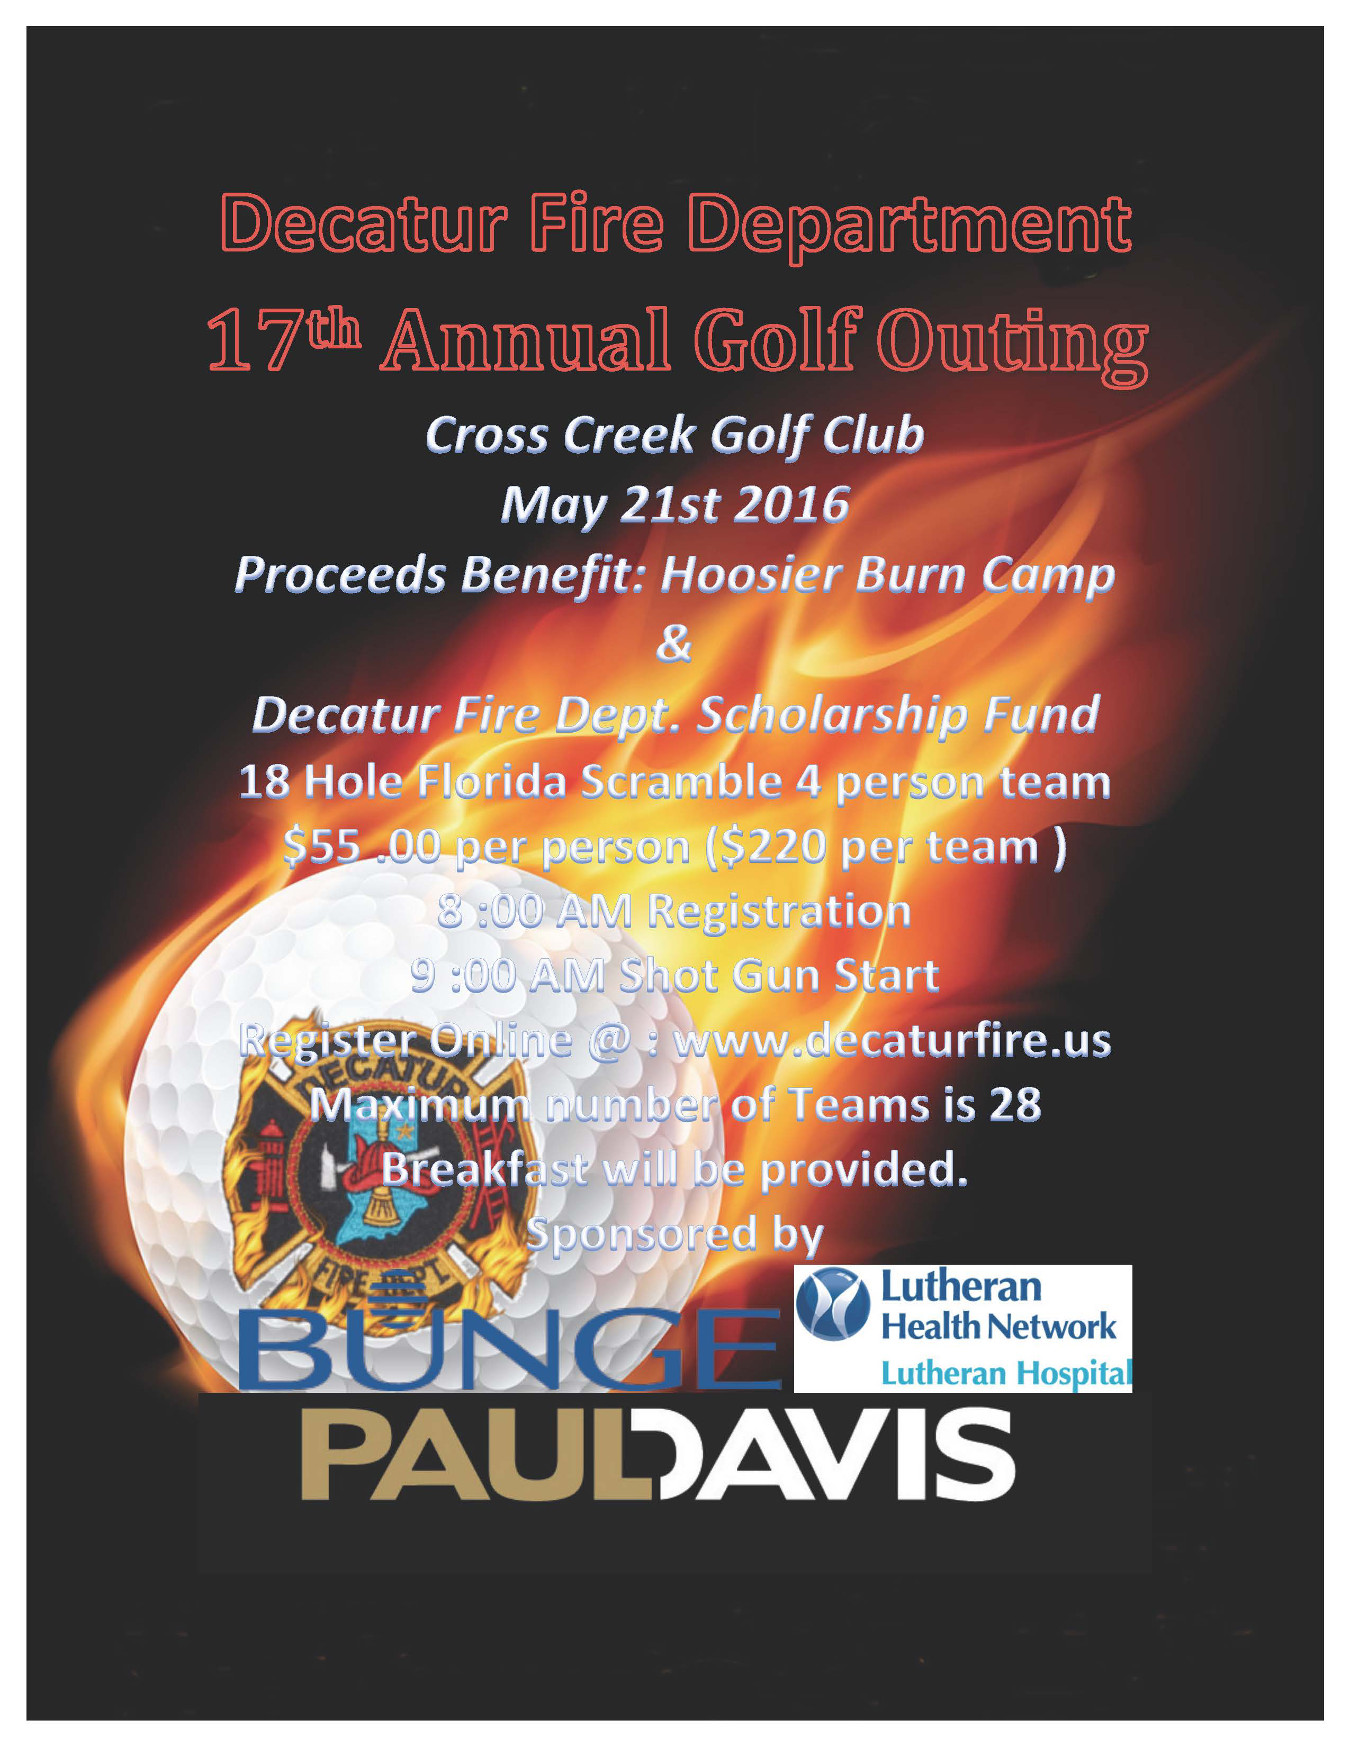 Decatur Fire Department Golf Outing 2016small